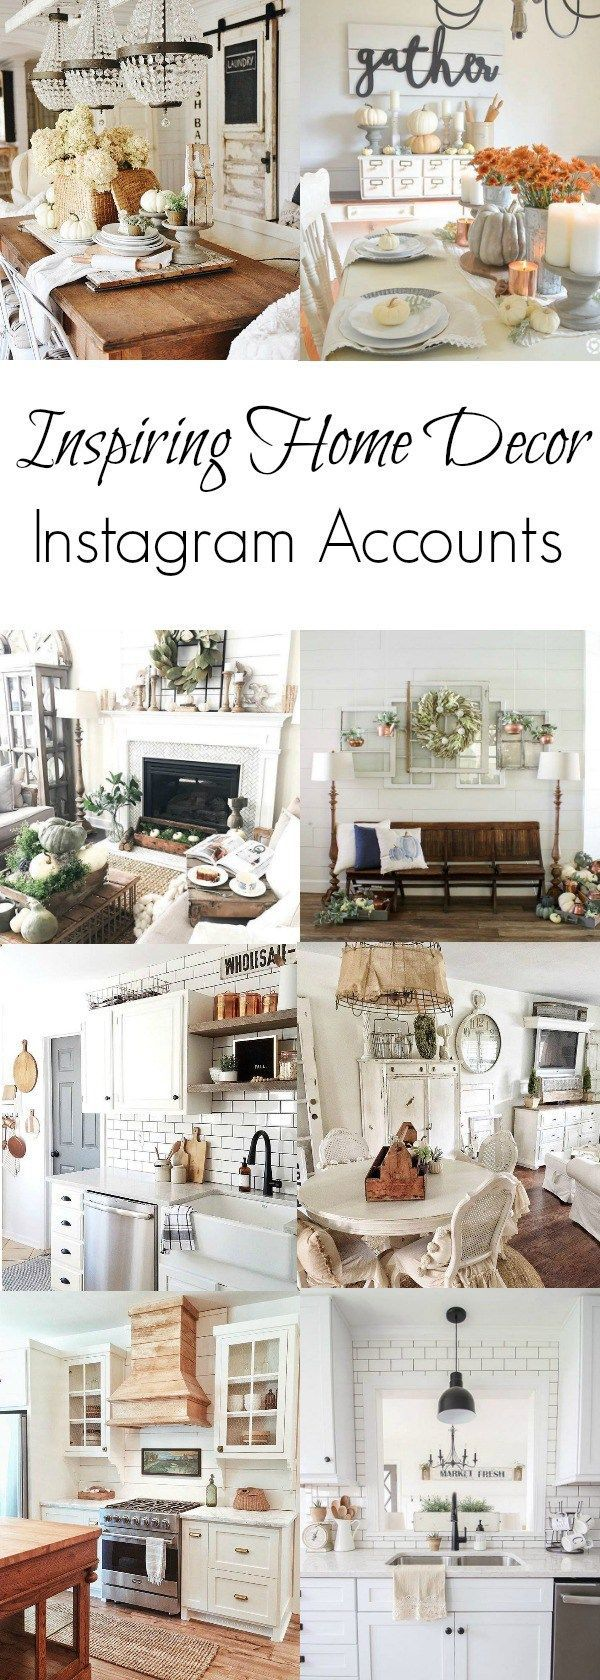 10 inspiring home decor Instagram accounts with farmhouse and ...